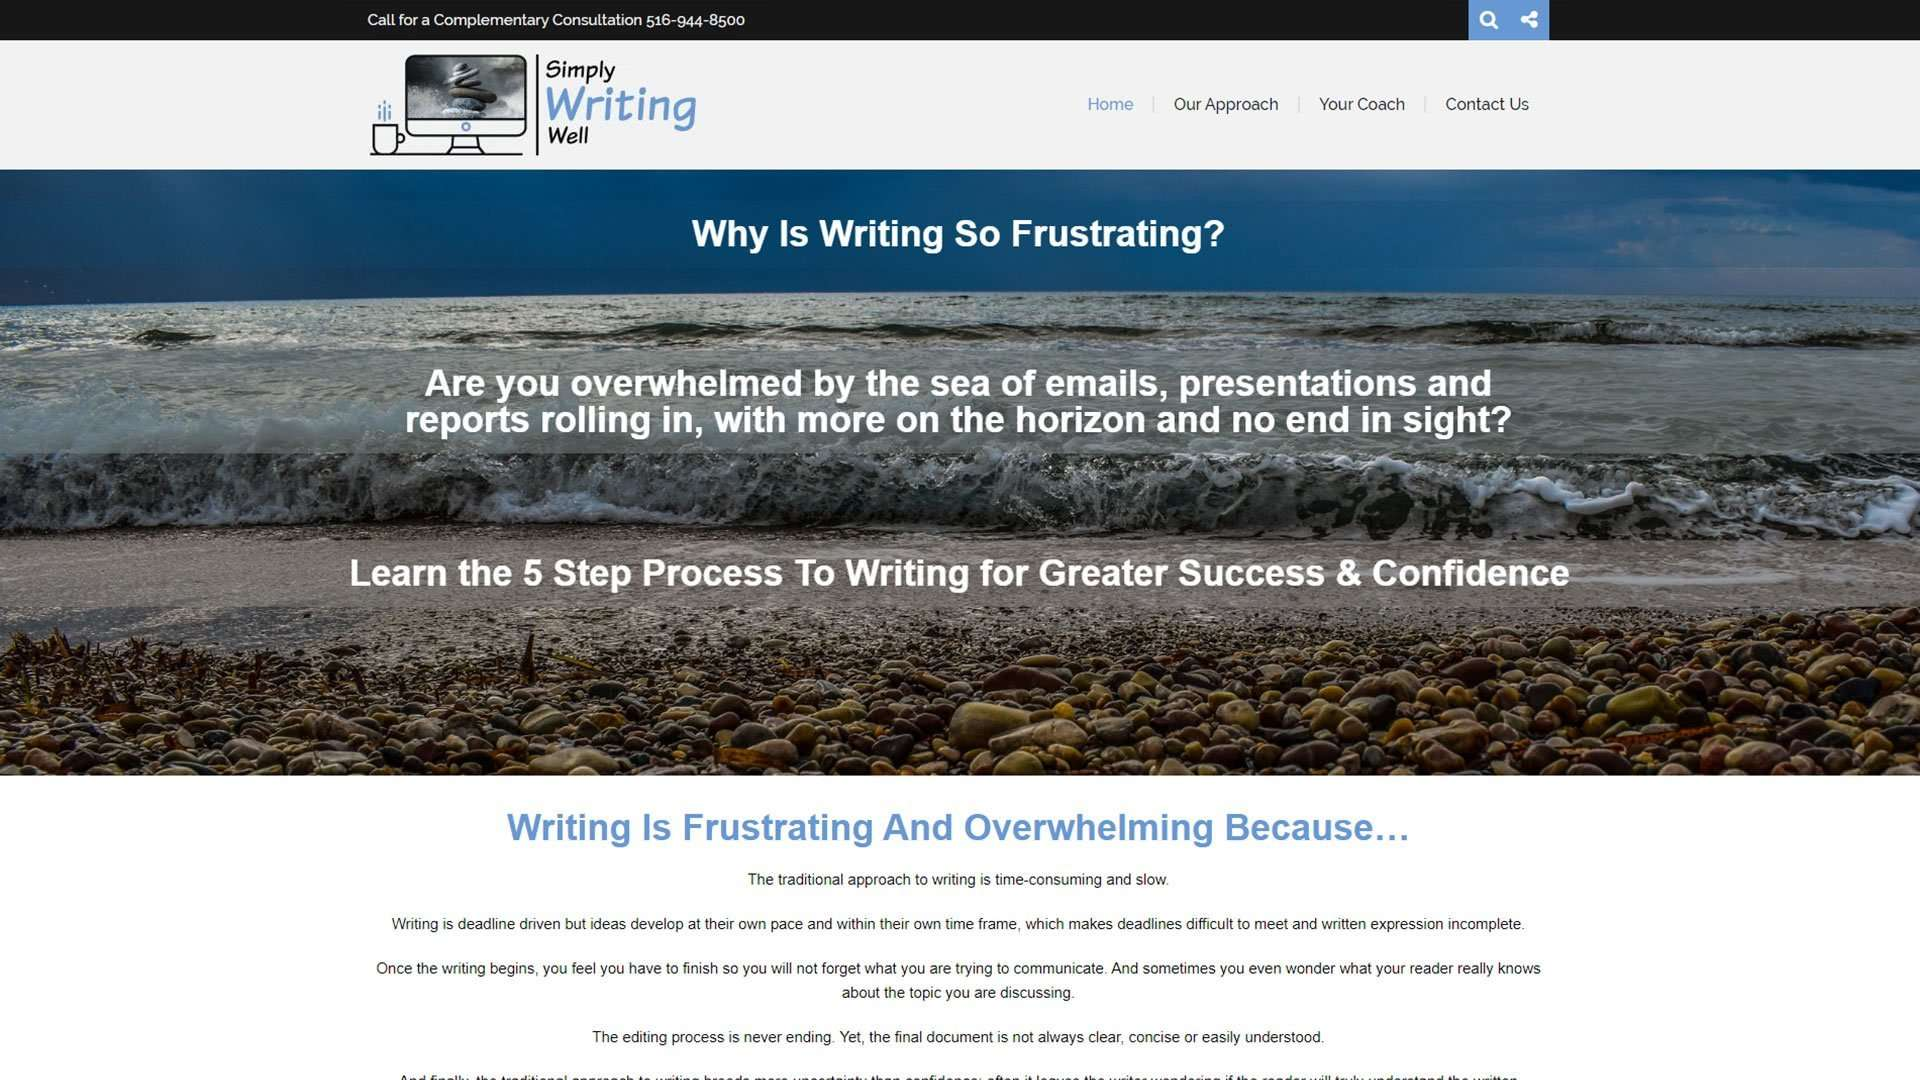 simply-writing-well-home-page